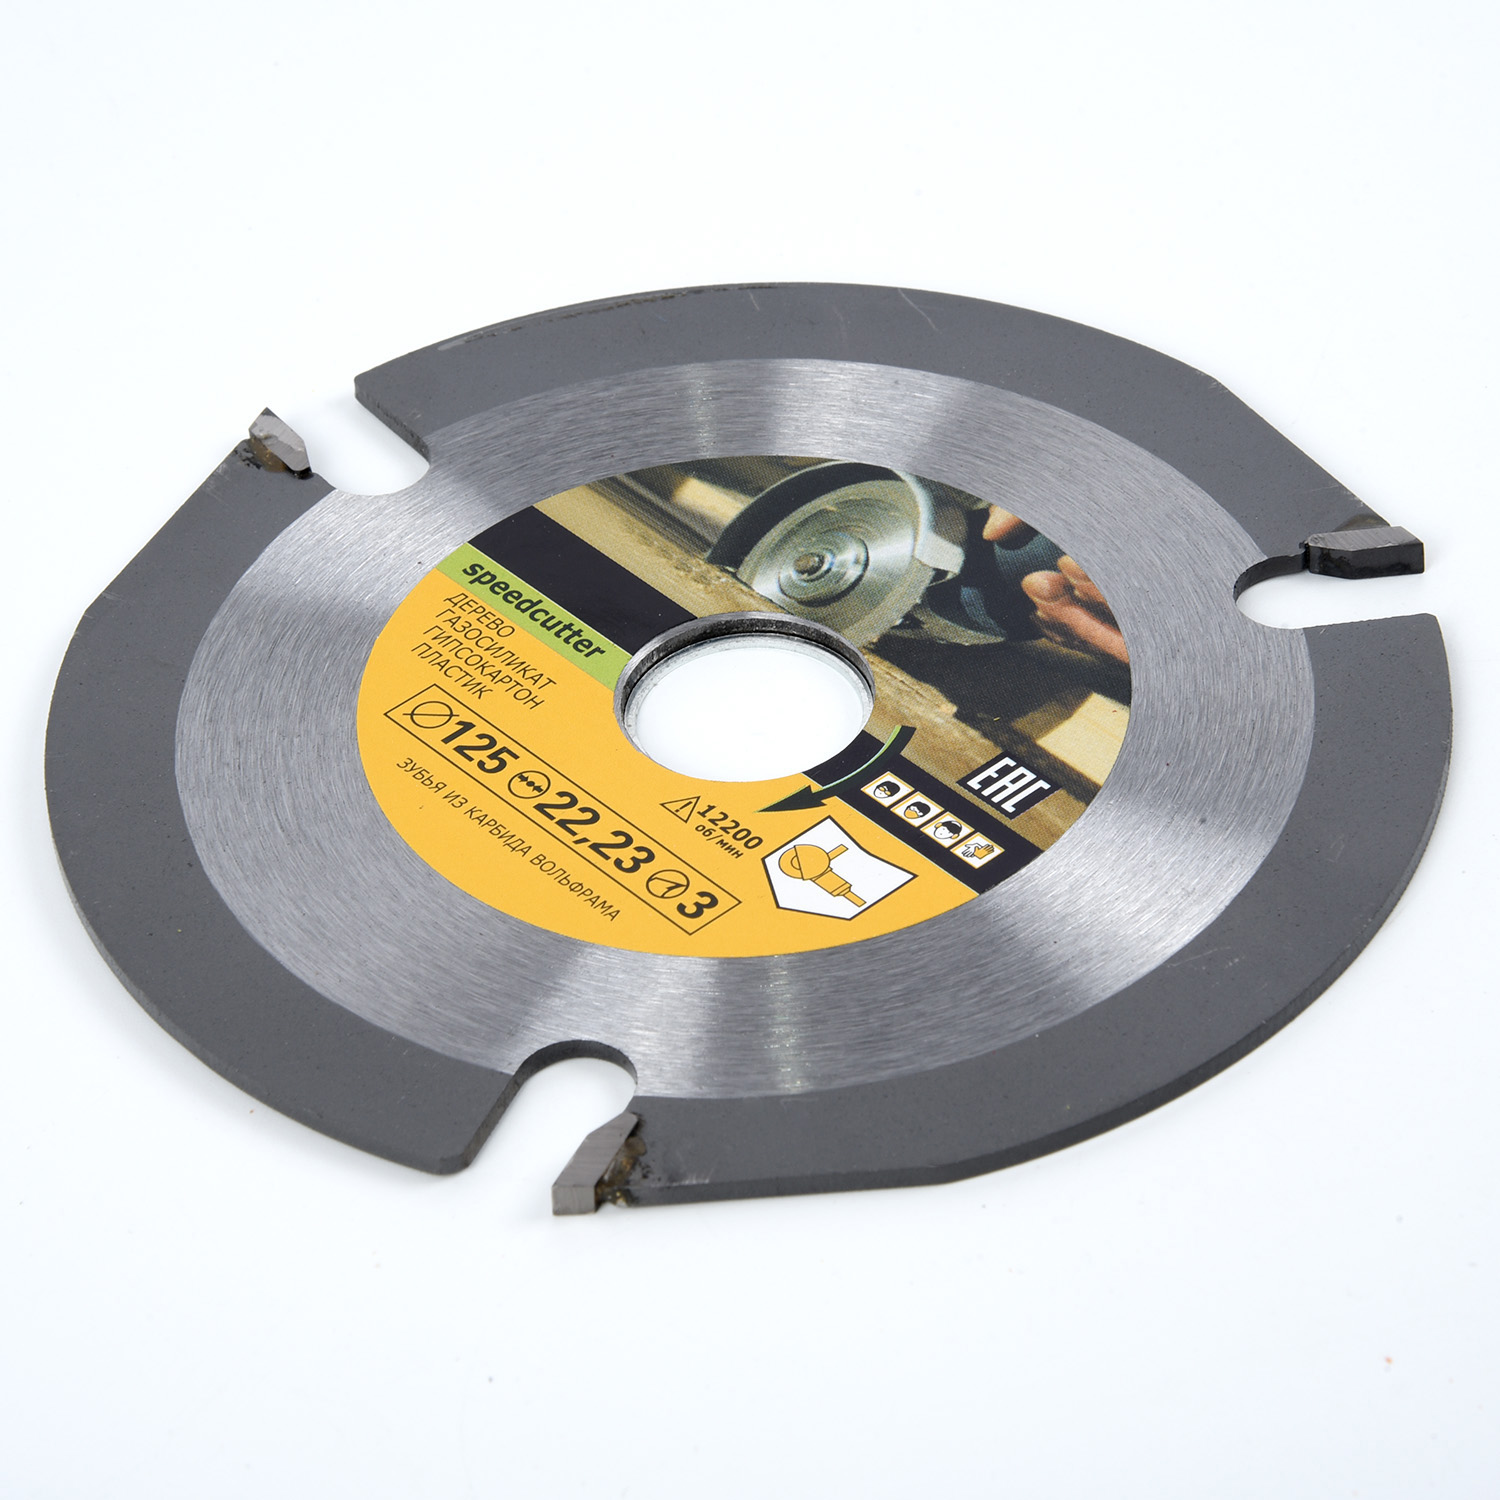 1pc 5 Inch 125mm 3T Circular Saw Blades Wood Cutter Multitool Grinder Saw Disc Wood Cutting Disc Wood Carving Disc Wheel